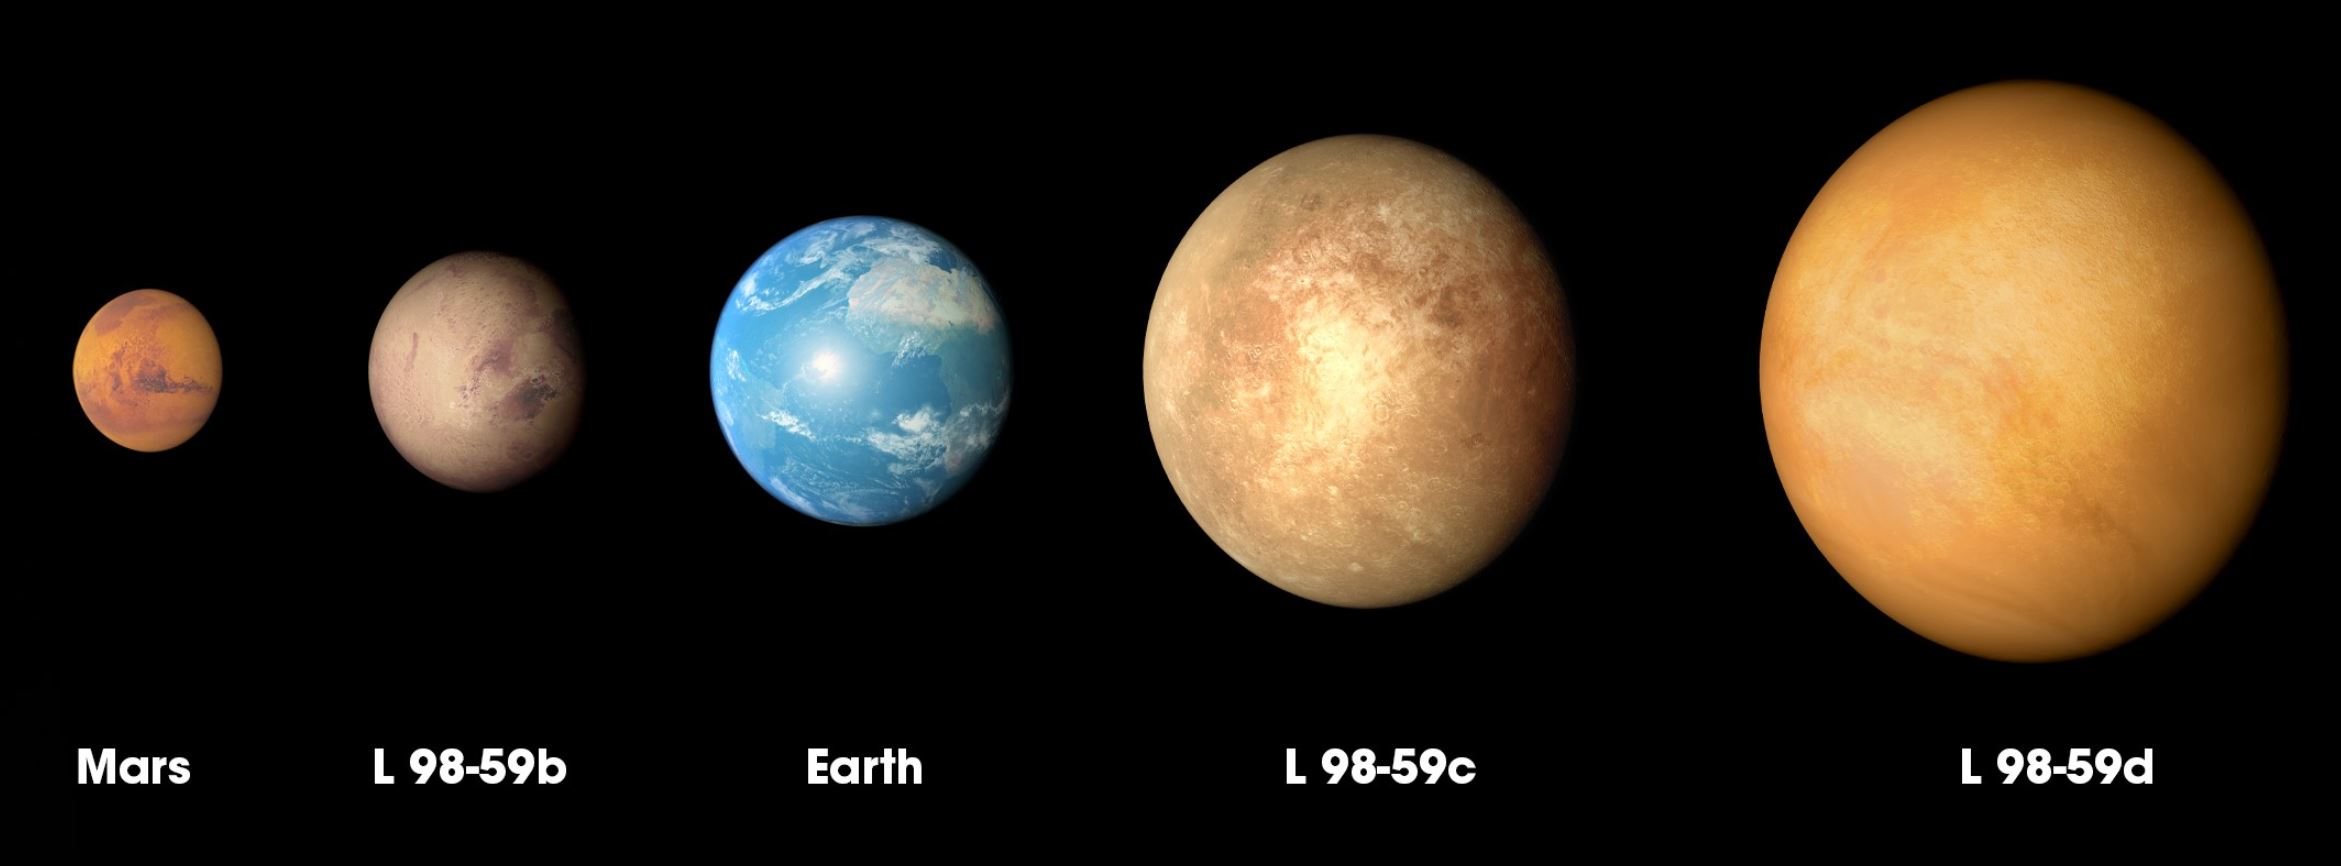 The three planets discovered in the L98-59 system by NASA's Transiting Exoplanet Survey Satellite (TESS) are compared to Mars and Earth in order of increasing size in this illustration. - Image Credit: NASA's Goddard Space Flight Center